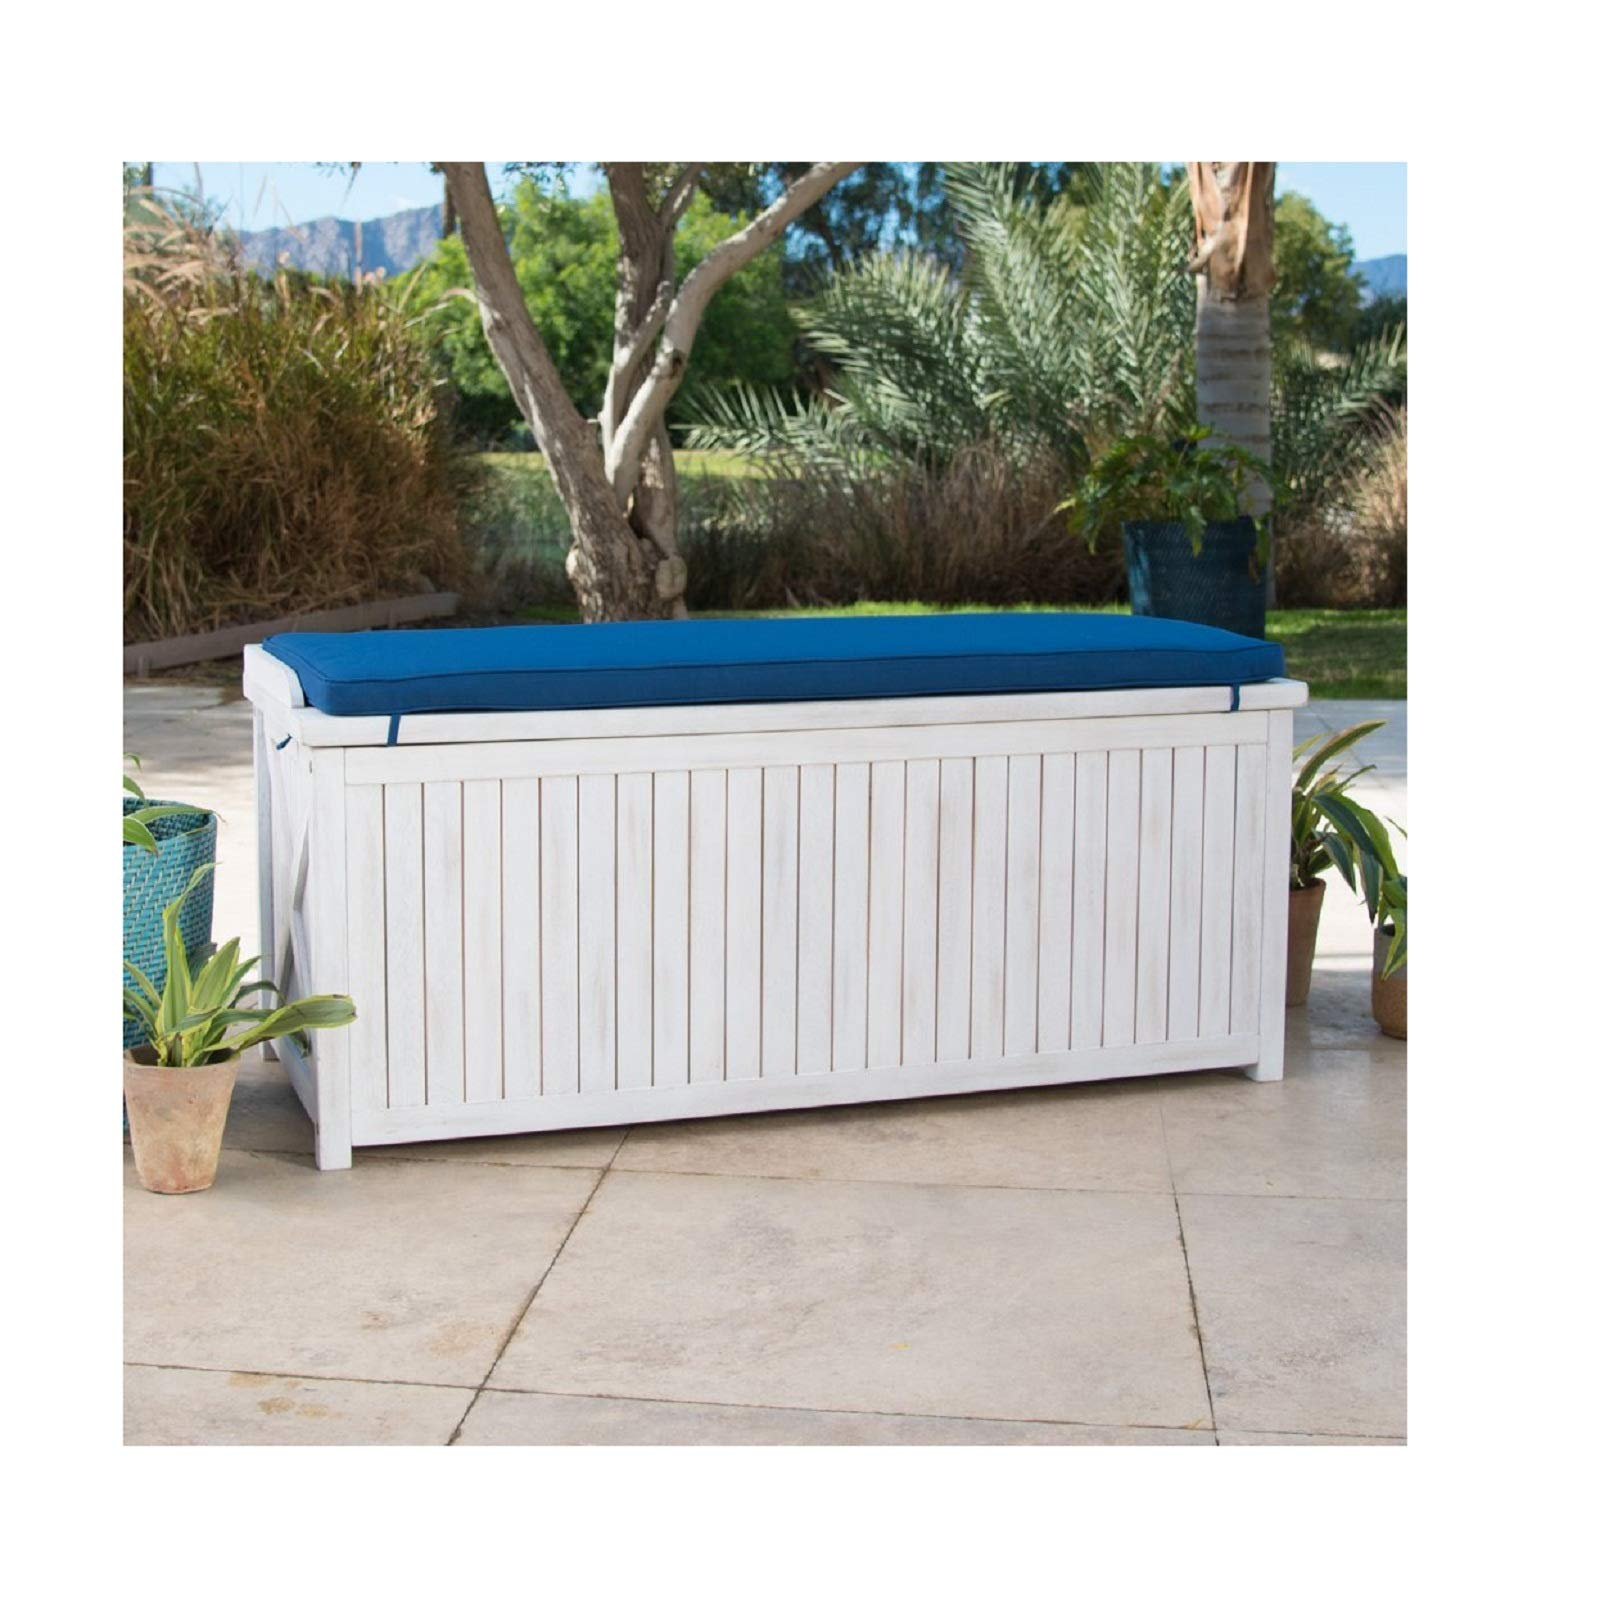 Home Improvements Coastal White Wash Finish Eucalyptus Wood Deck Storage Box Patio Storage Bench With Blue Cushion Outdoor Storage